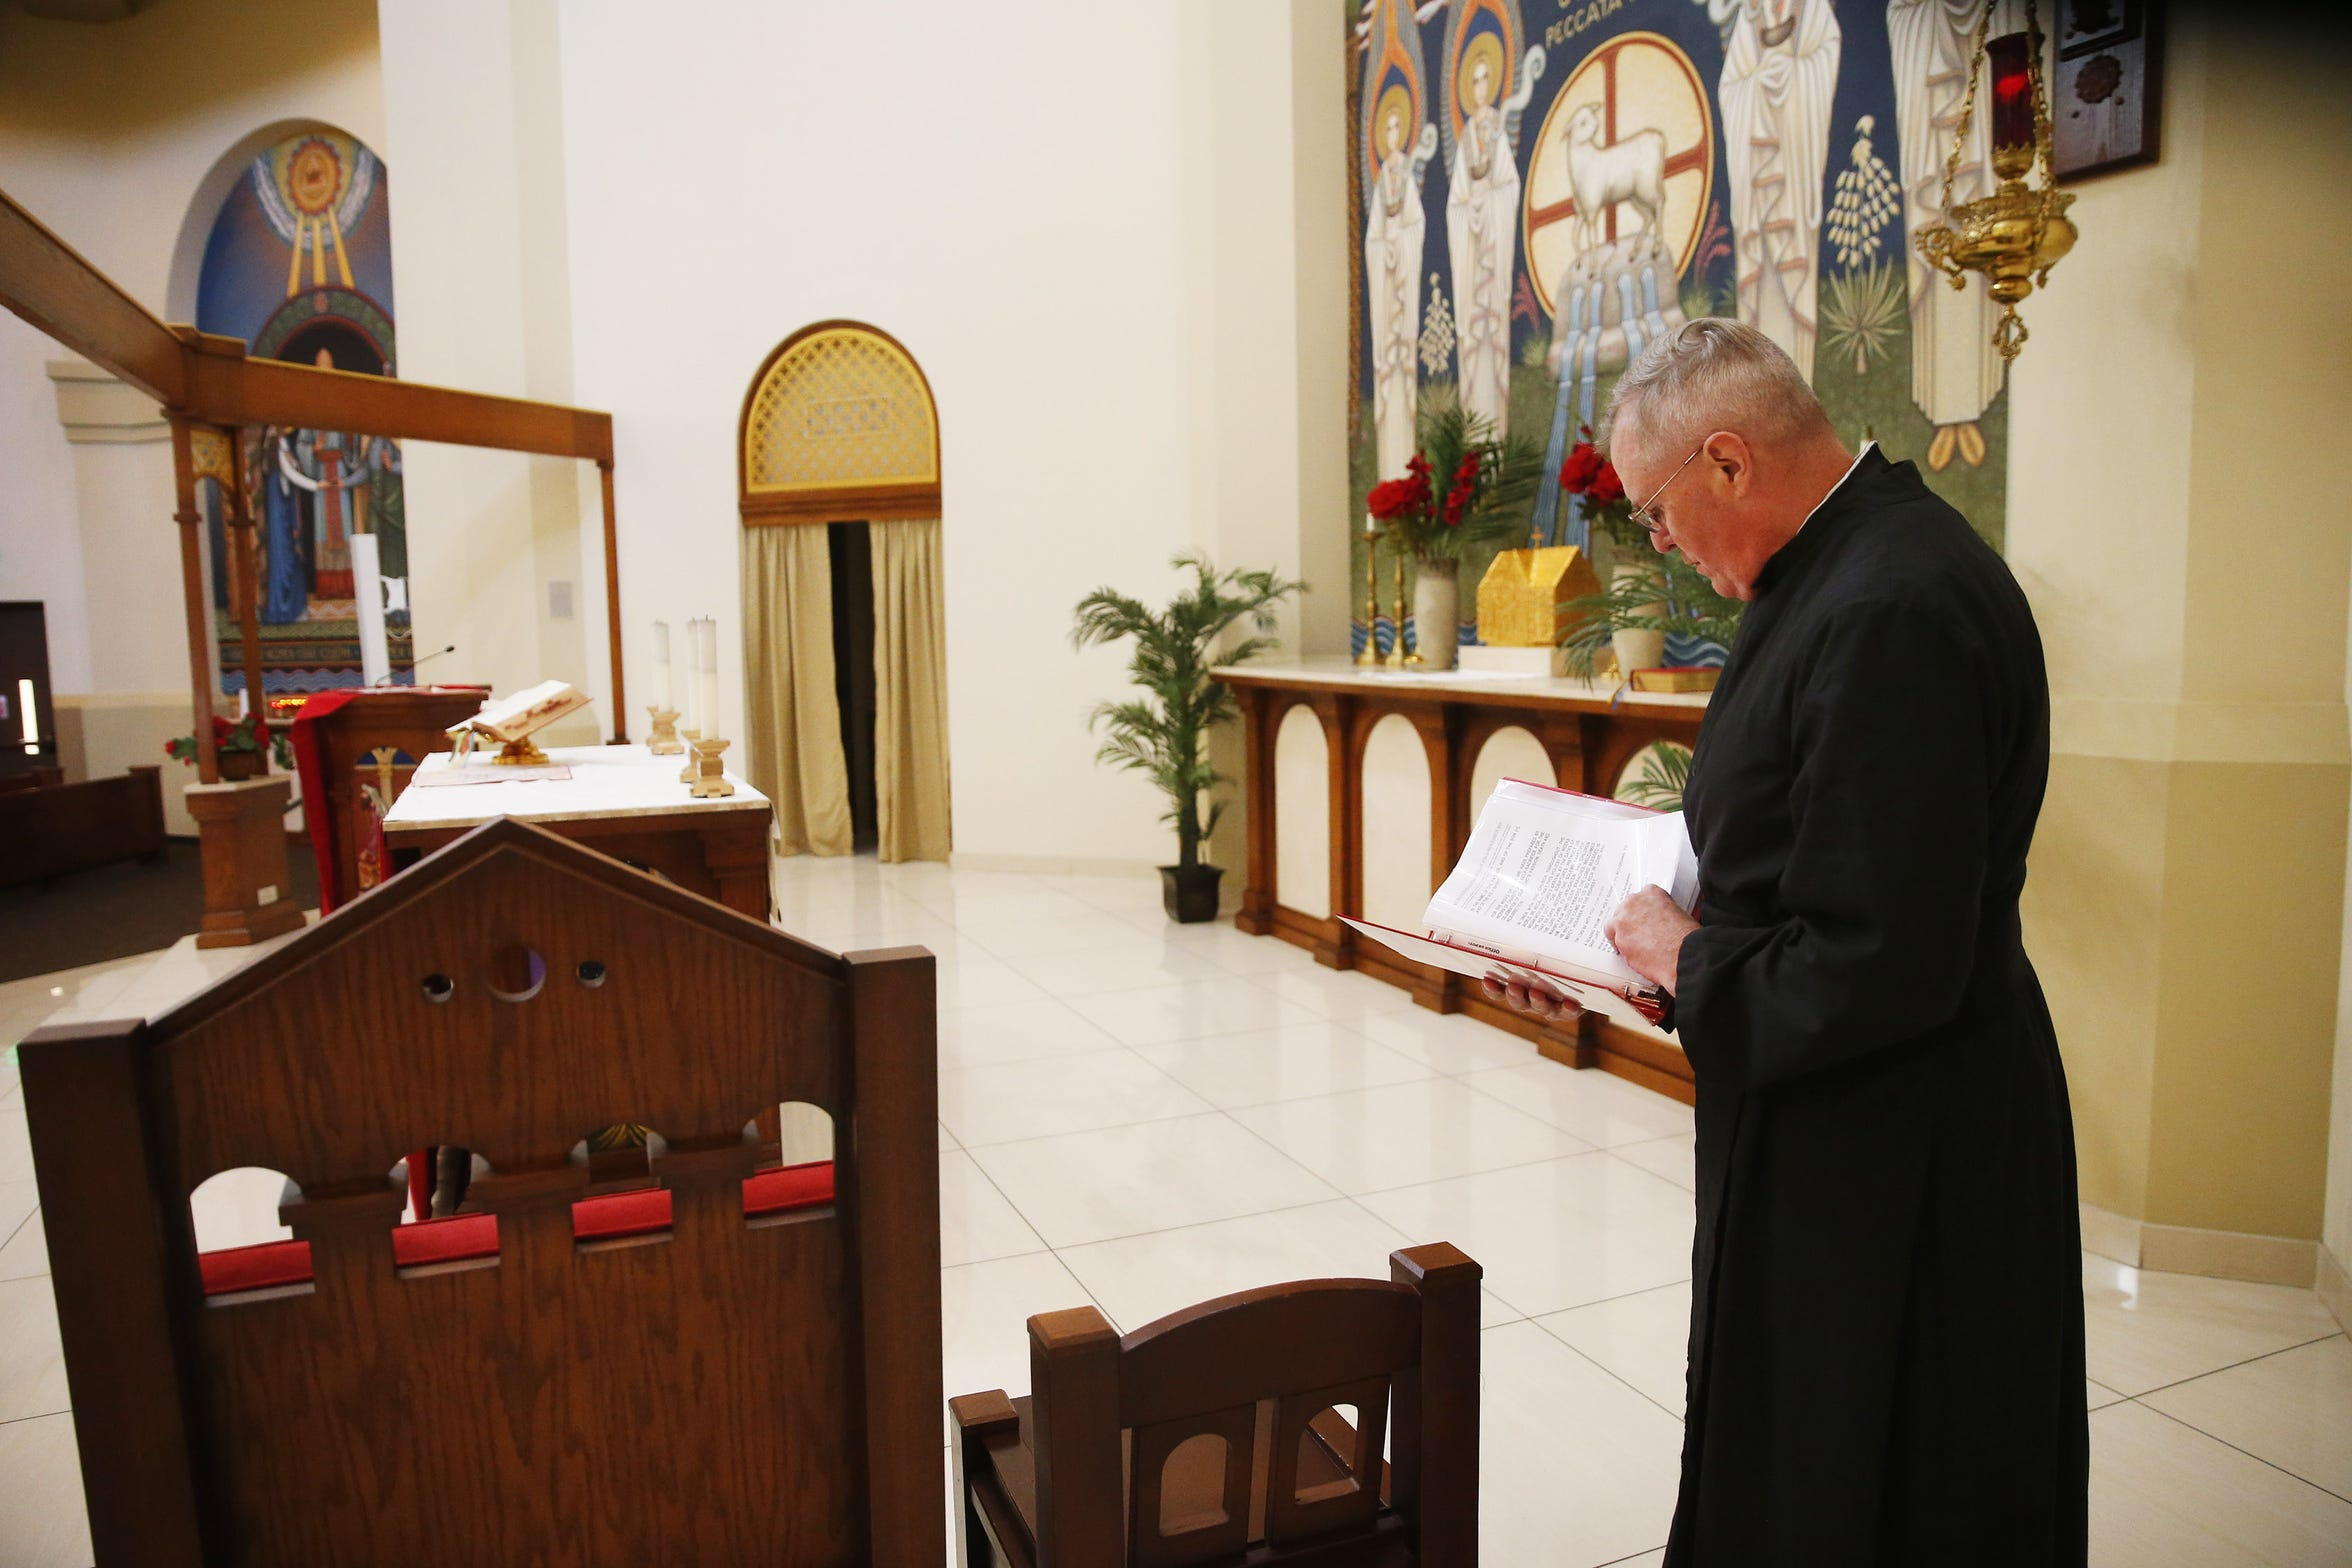 The Rev. Rob Clements prepares for Palm Sunday mass at the ASU Catholic Newman Center in Tempe, Ariz. April 14, 2019.